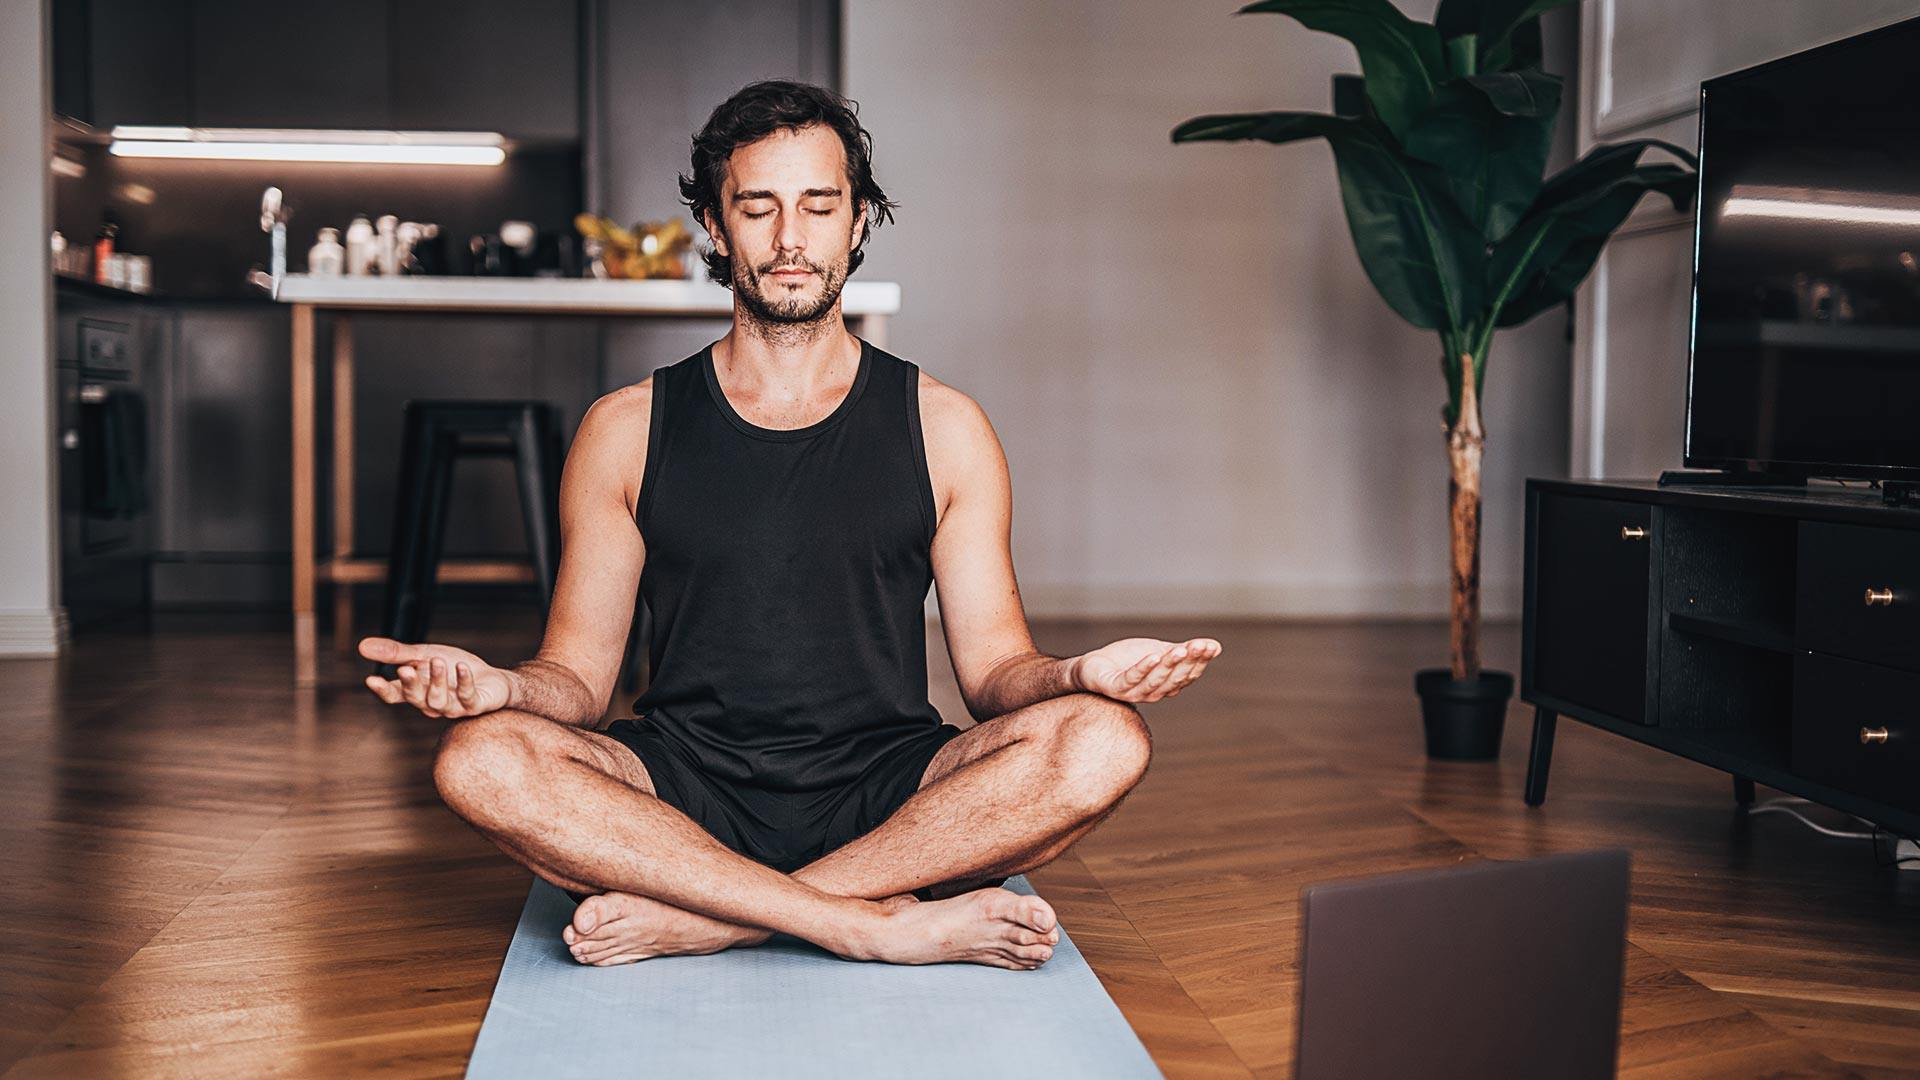 Try Meditating To Improve Your Health